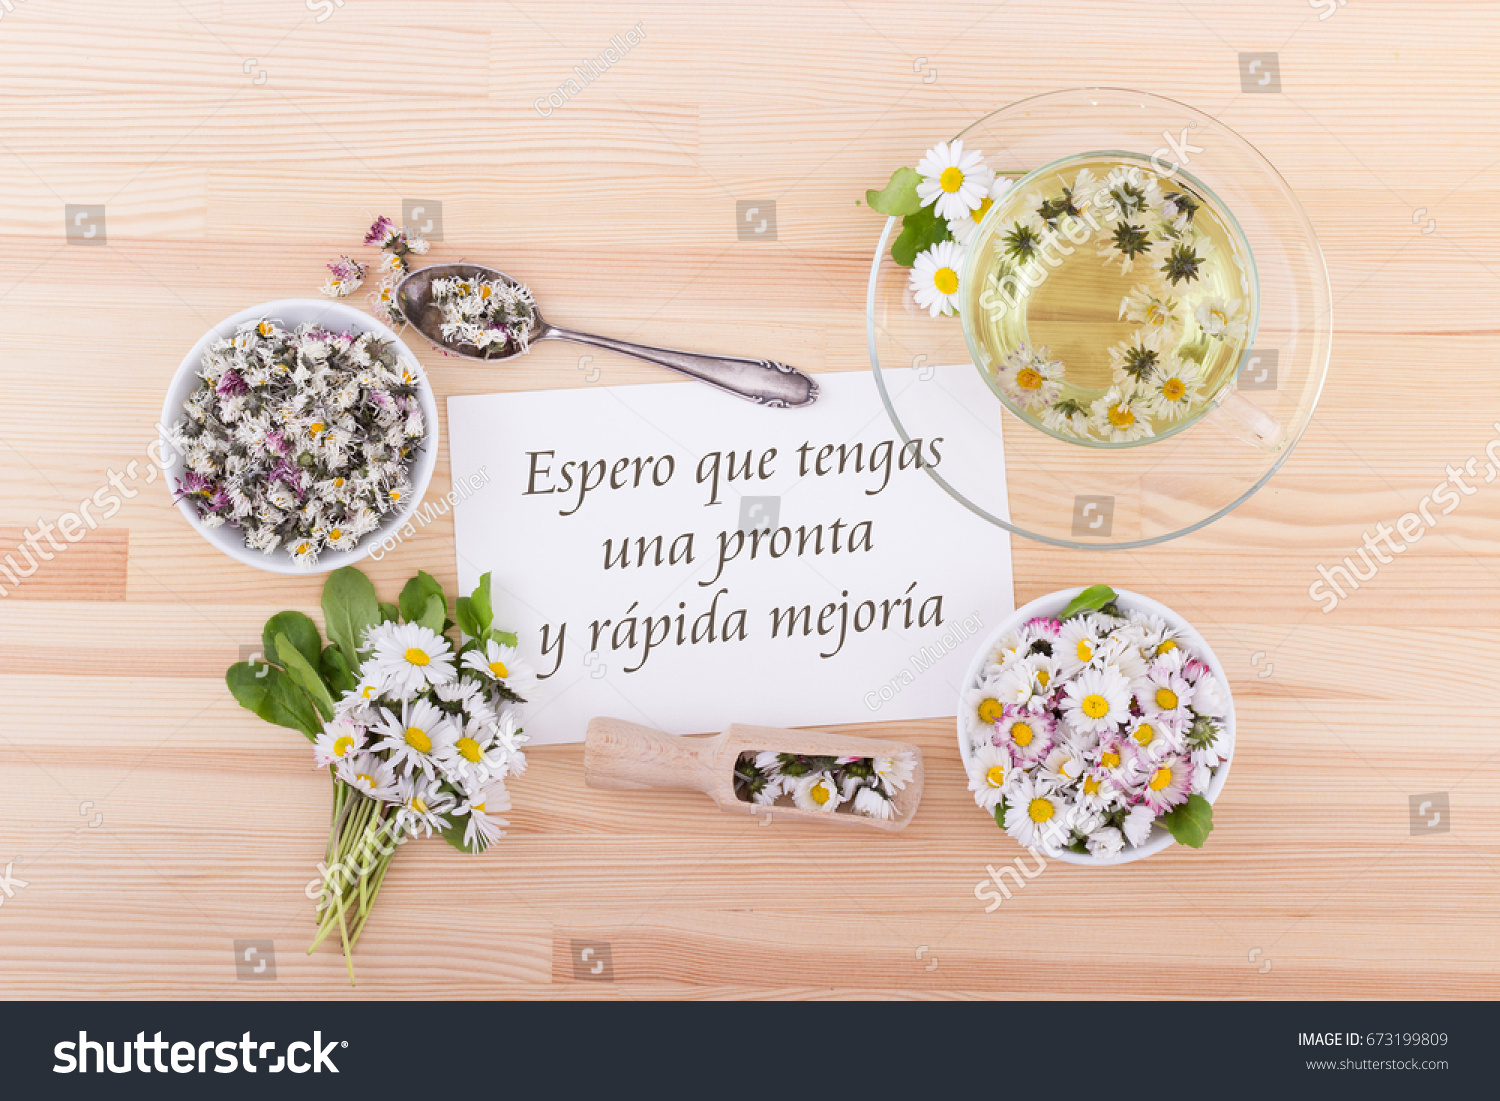 Greeting Card Spanish Text Hope Your Stock Photo Royalty Free